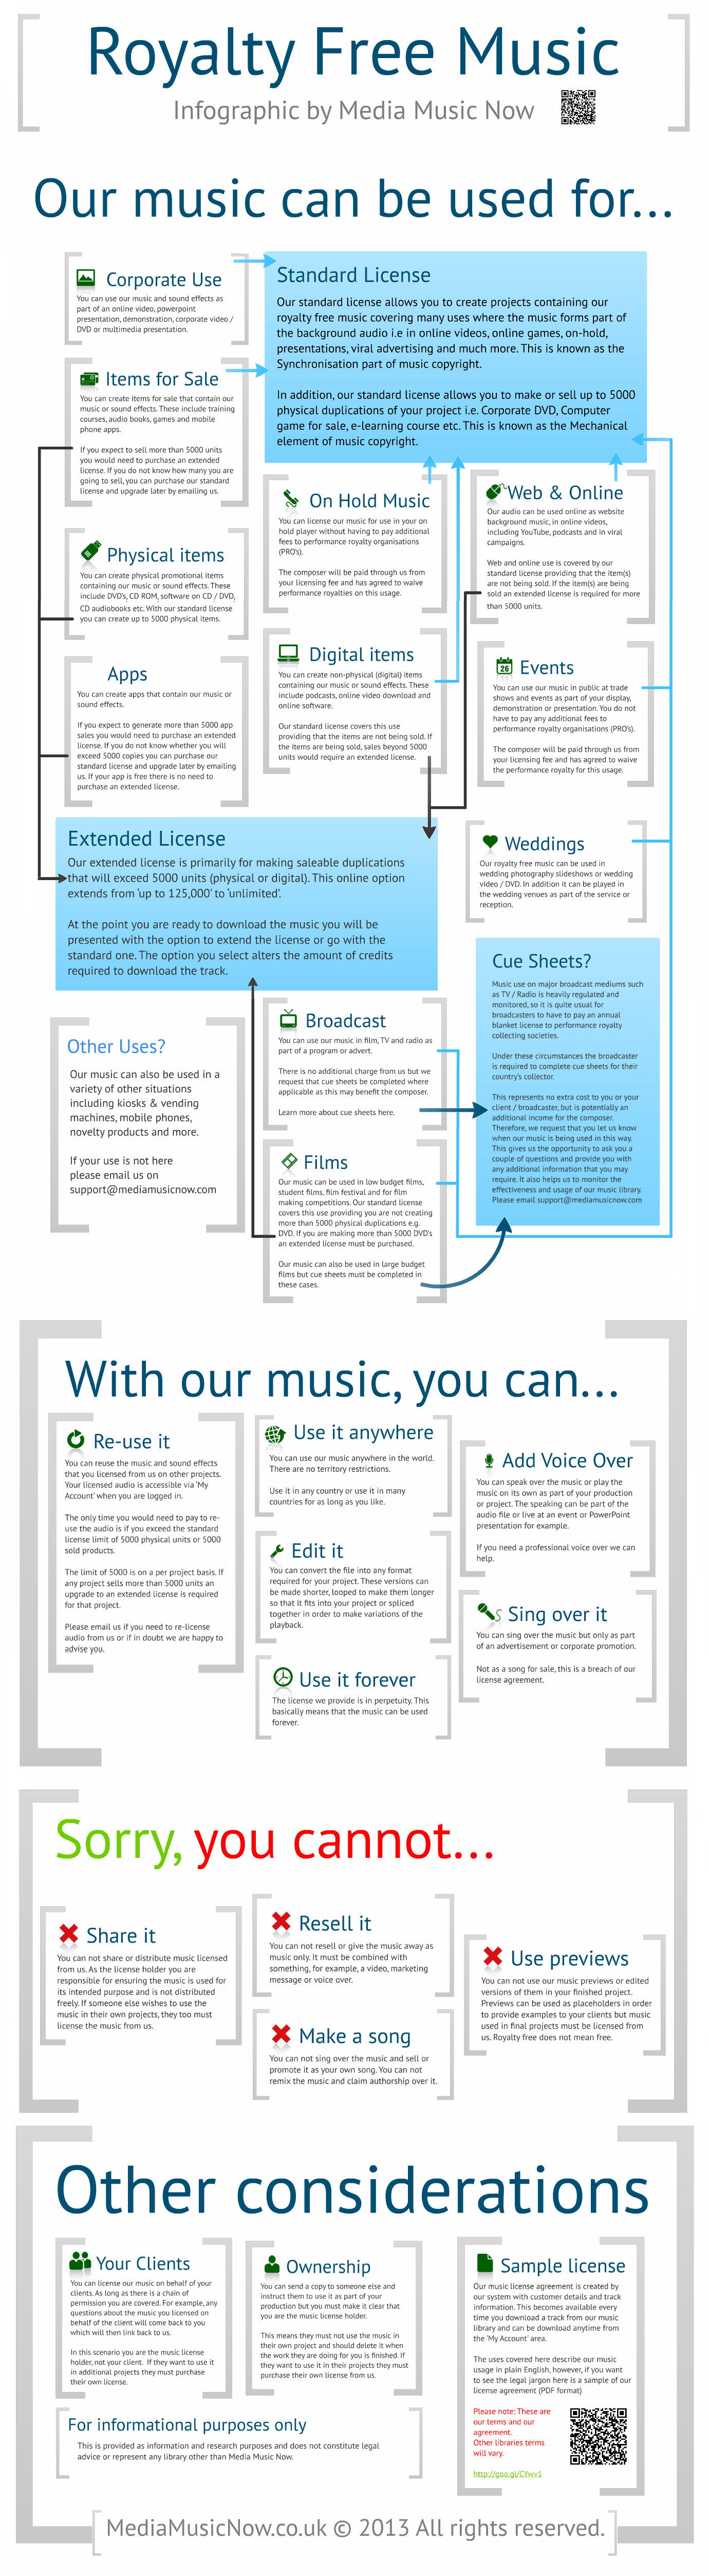 Royalty Free Music Infographic